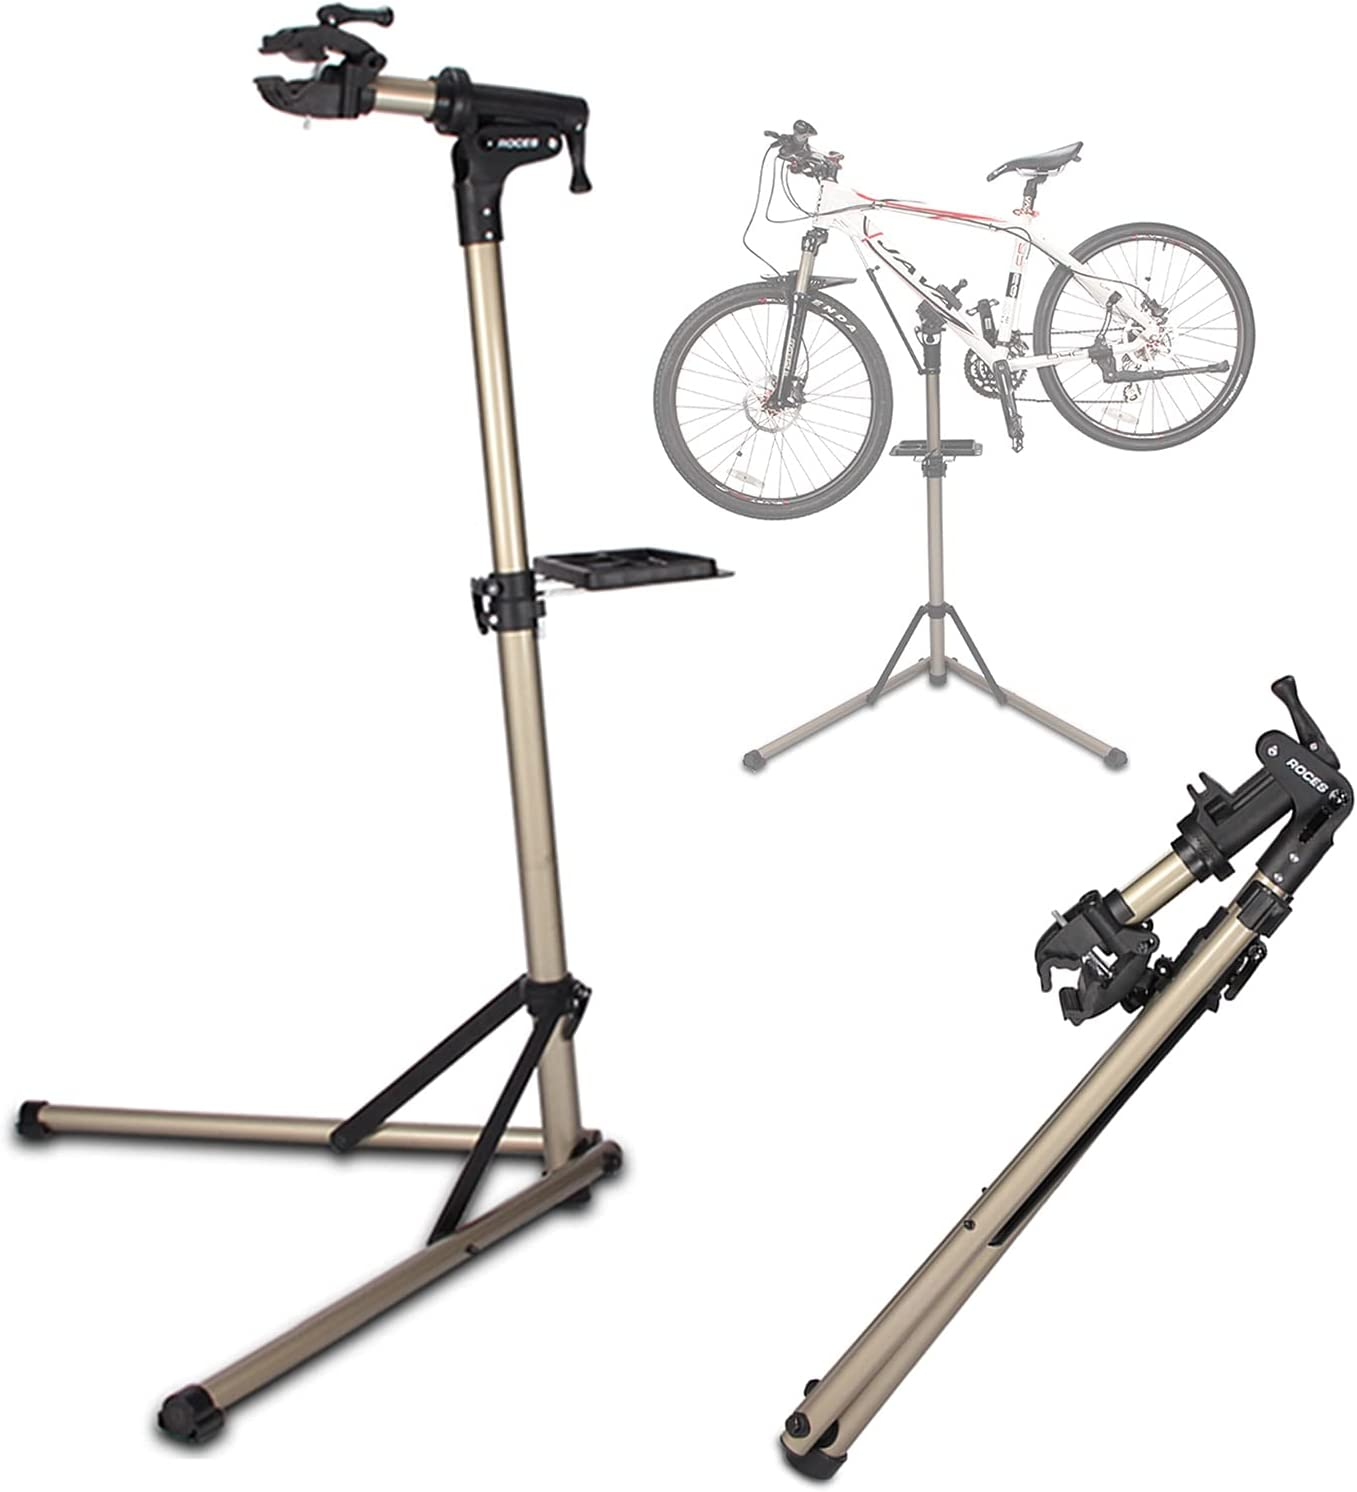 Credence LSM Foldable Bike Repair 100% quality warranty Stand Aluminum Lightweight Workstation